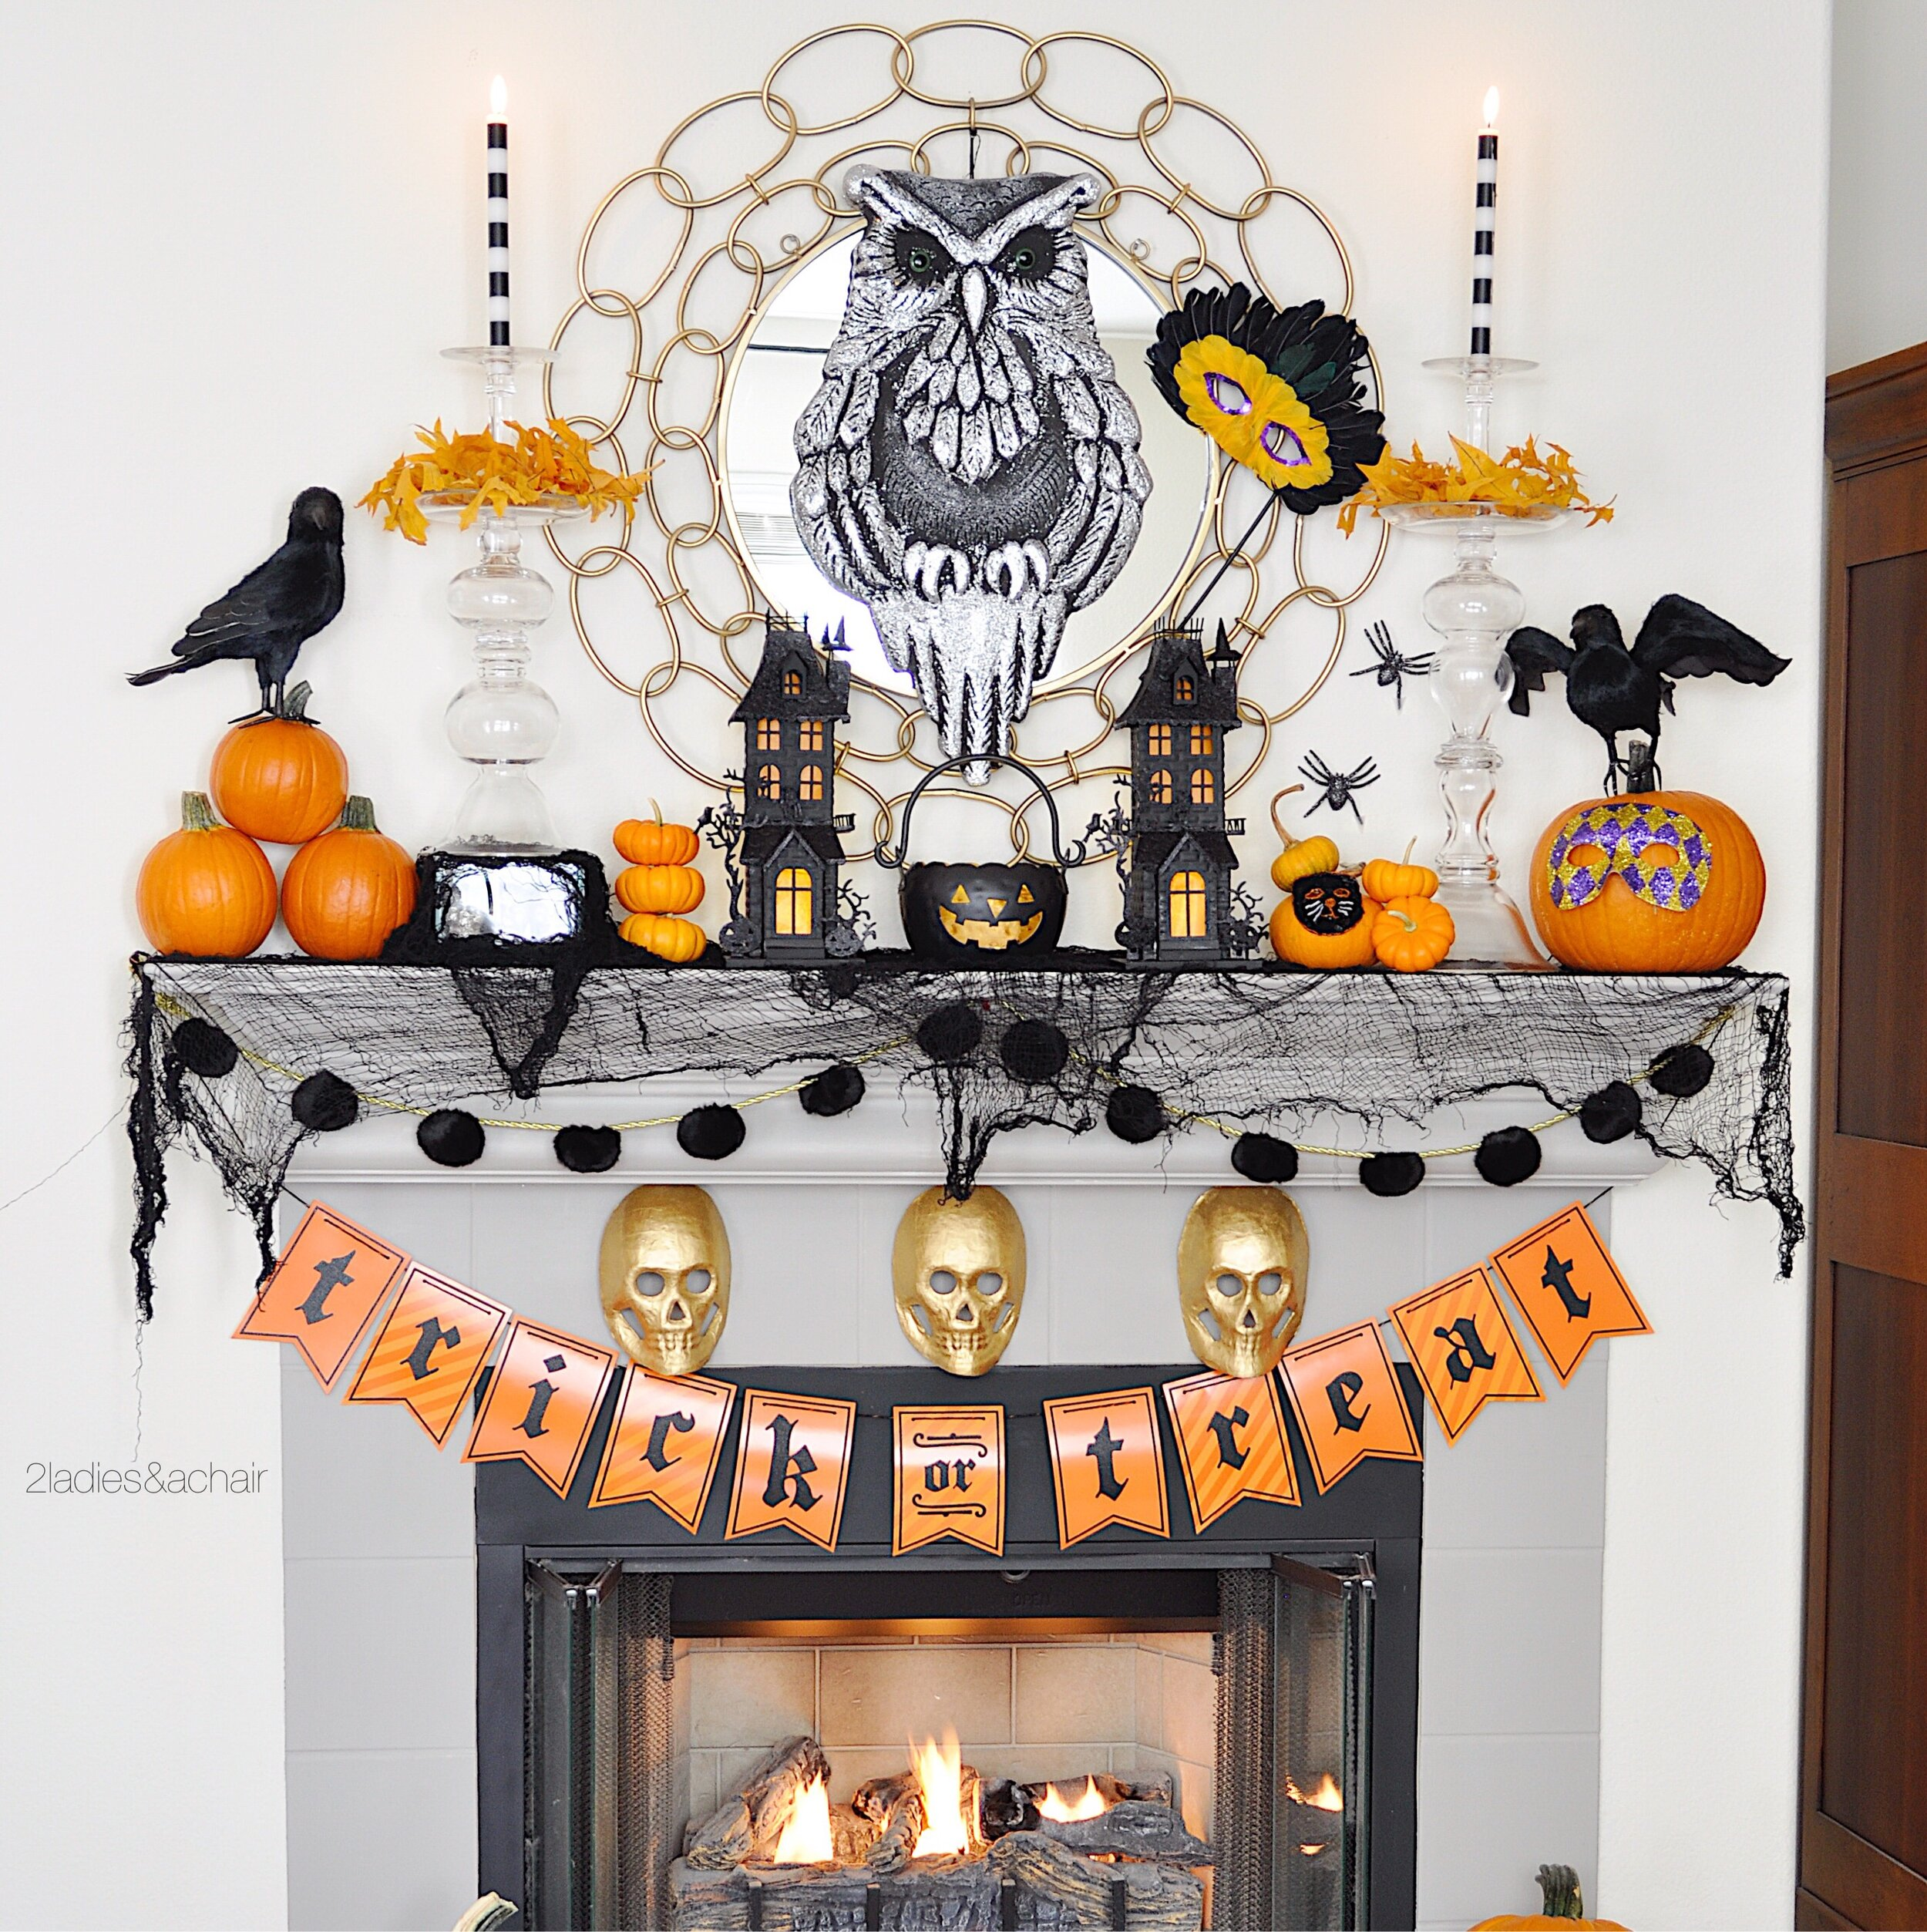 5 fall mantel ideas IMG_9634.JPG